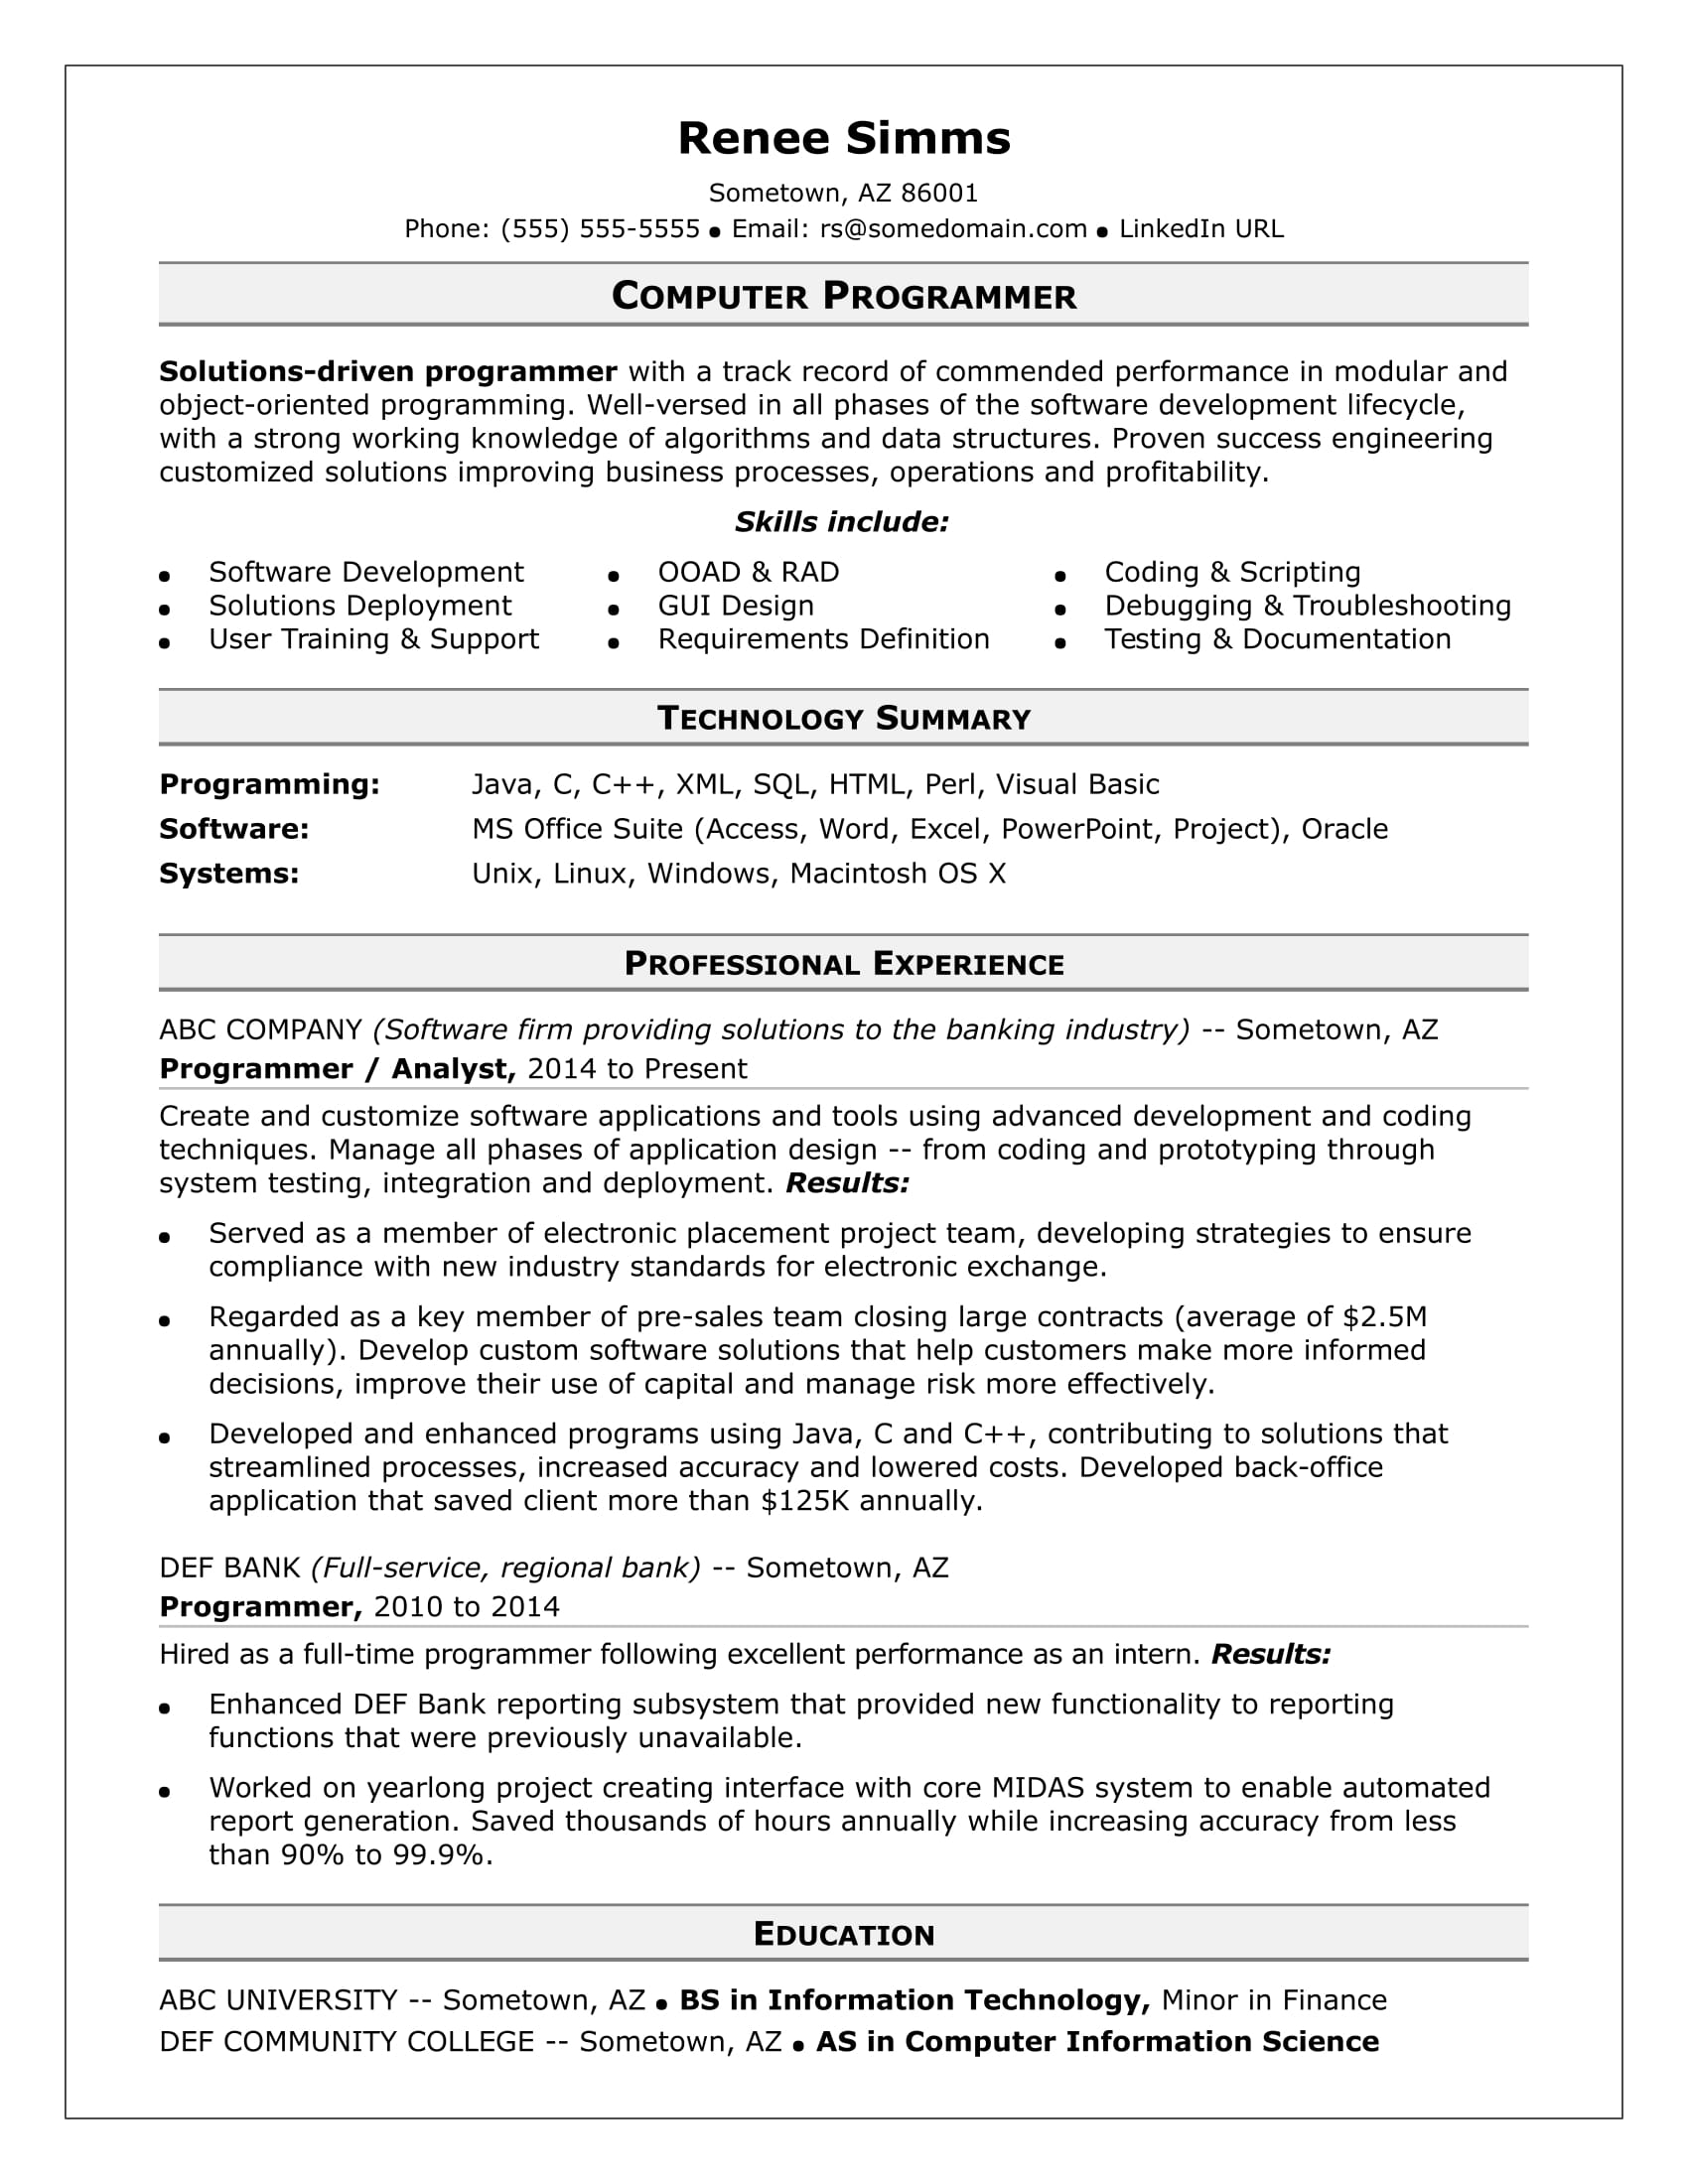 Sample Resume For A Midlevel Computer Programmer Pic Schematic Together With Serial